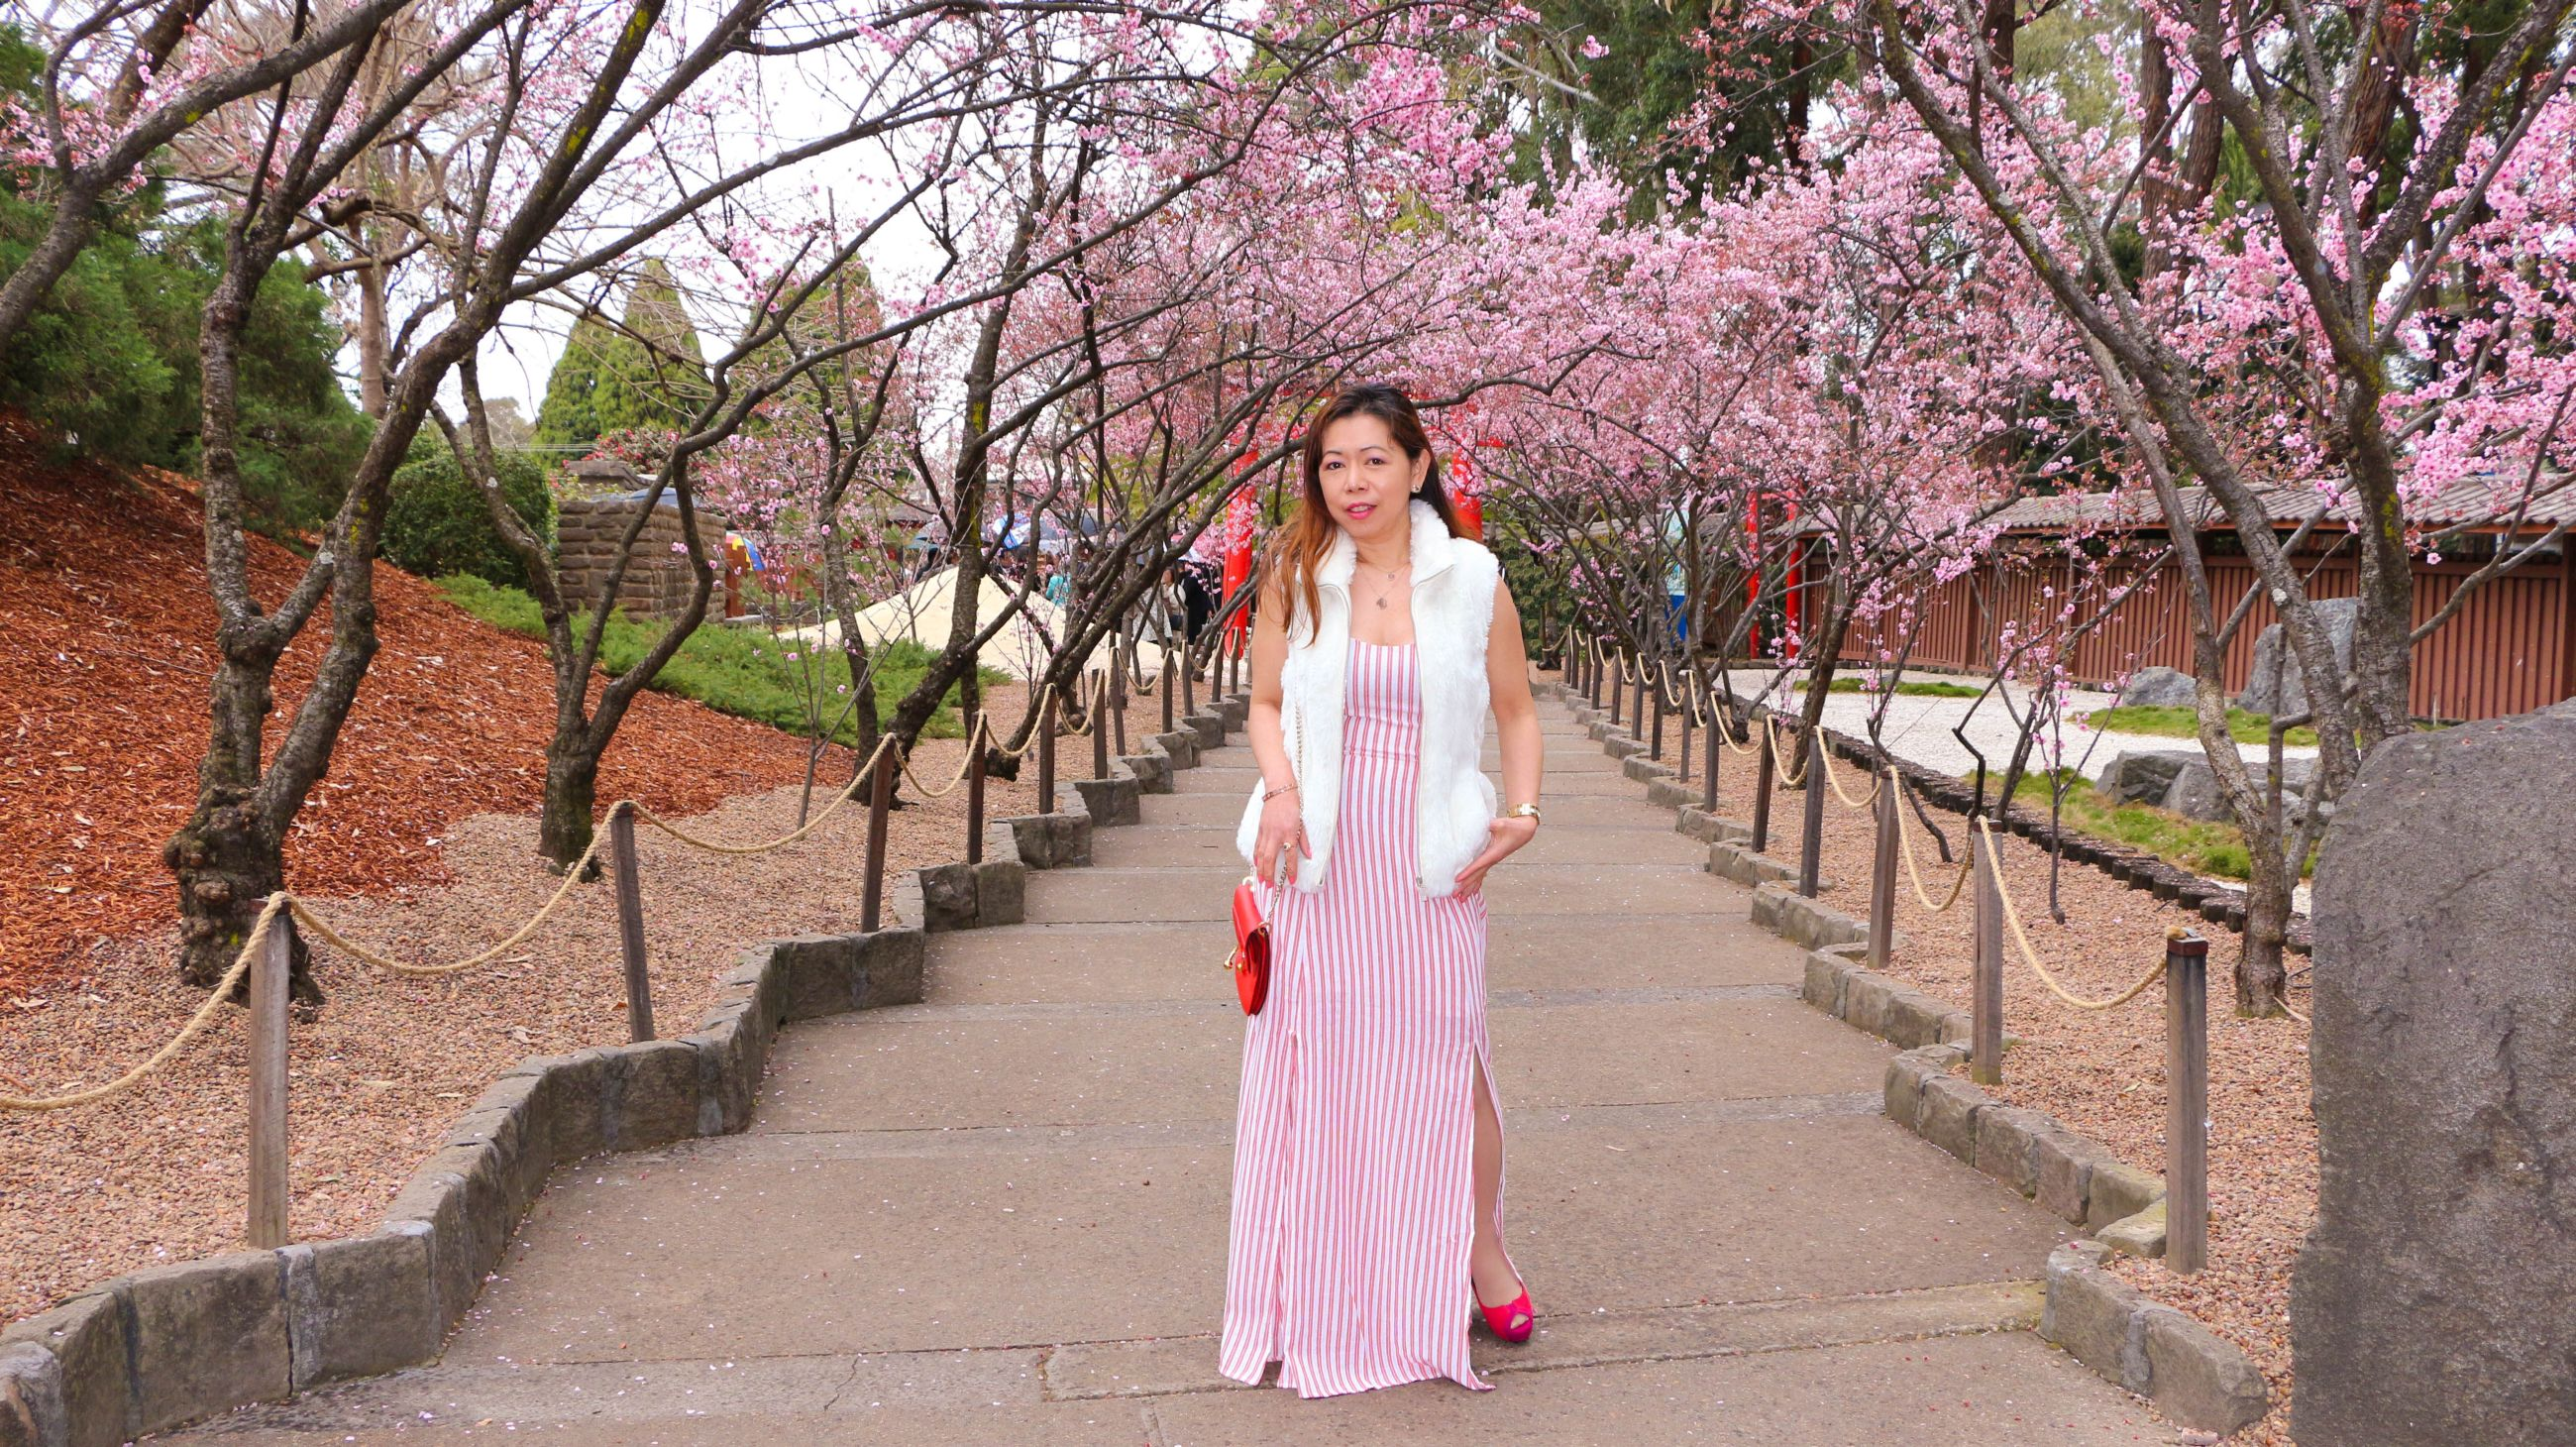 What to wear in Cherry blossom garden